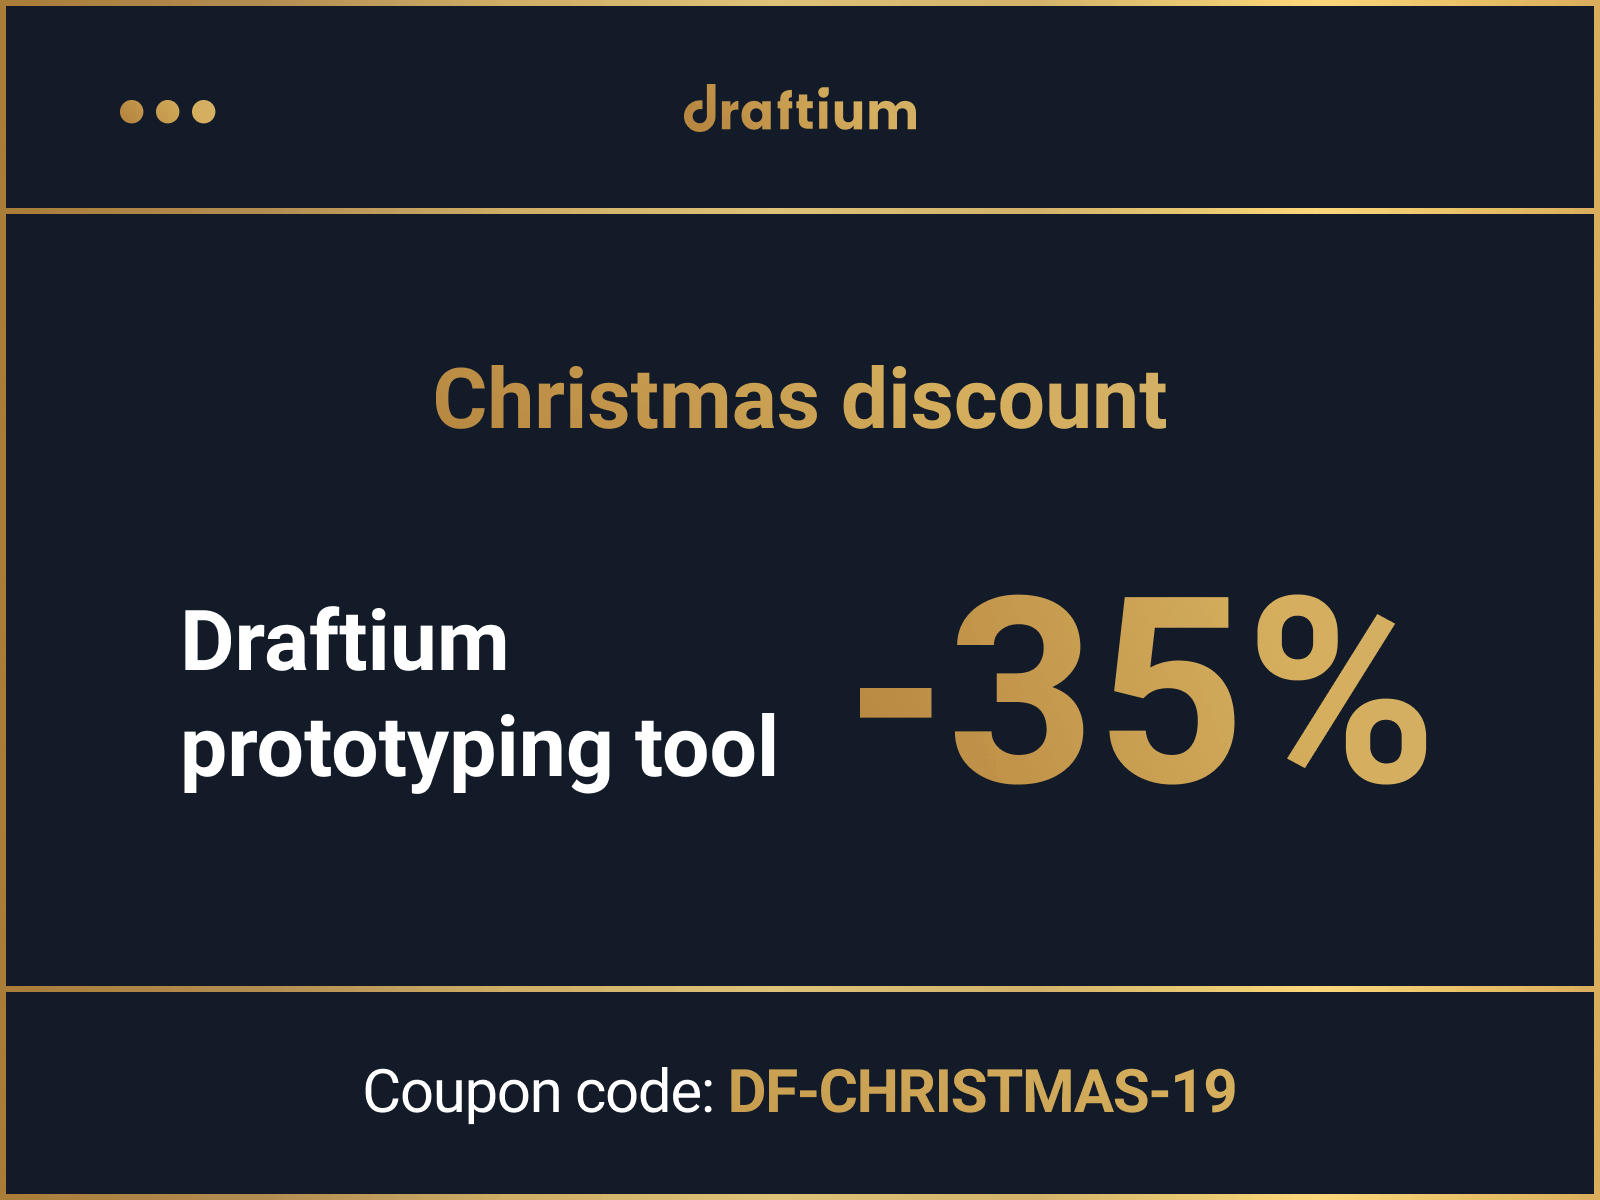 Christmas offer by SE Draftium